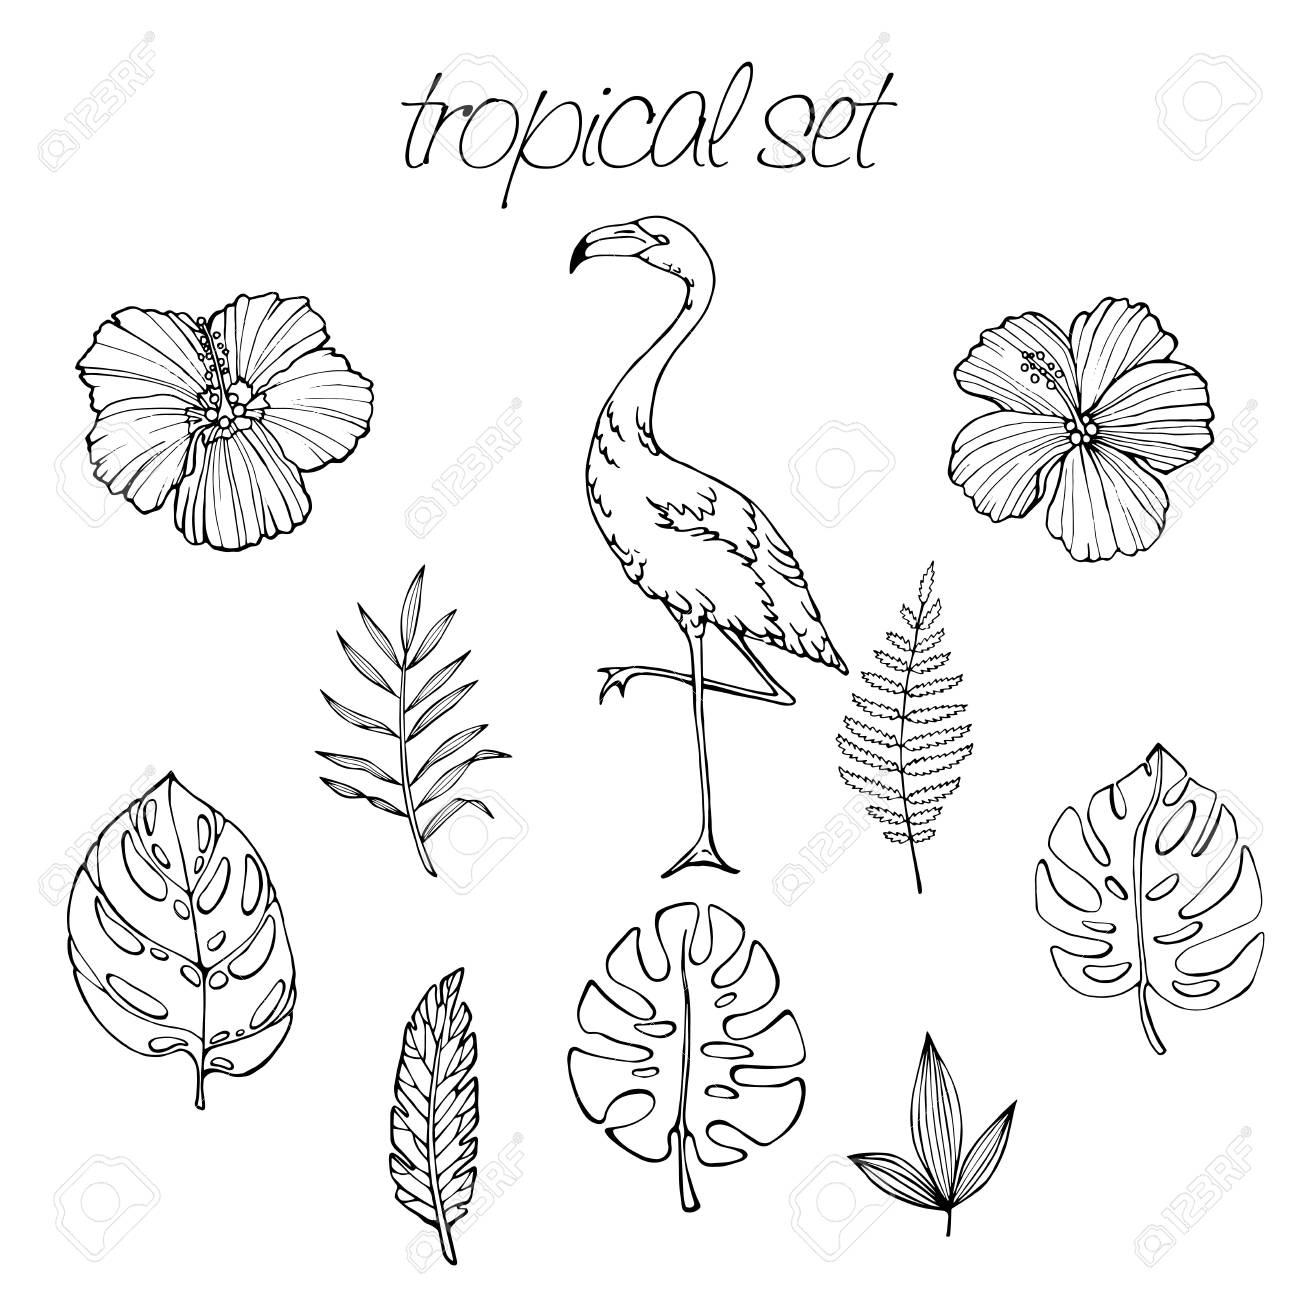 Vector Tropical Set Of Tropical Elements Palm Leaves Tropical Royalty Free Cliparts Vectors And Stock Illustration Image 93056427 Here presented 62+ tropical leaf drawing images for free to download, print or share. vector tropical set of tropical elements palm leaves tropical